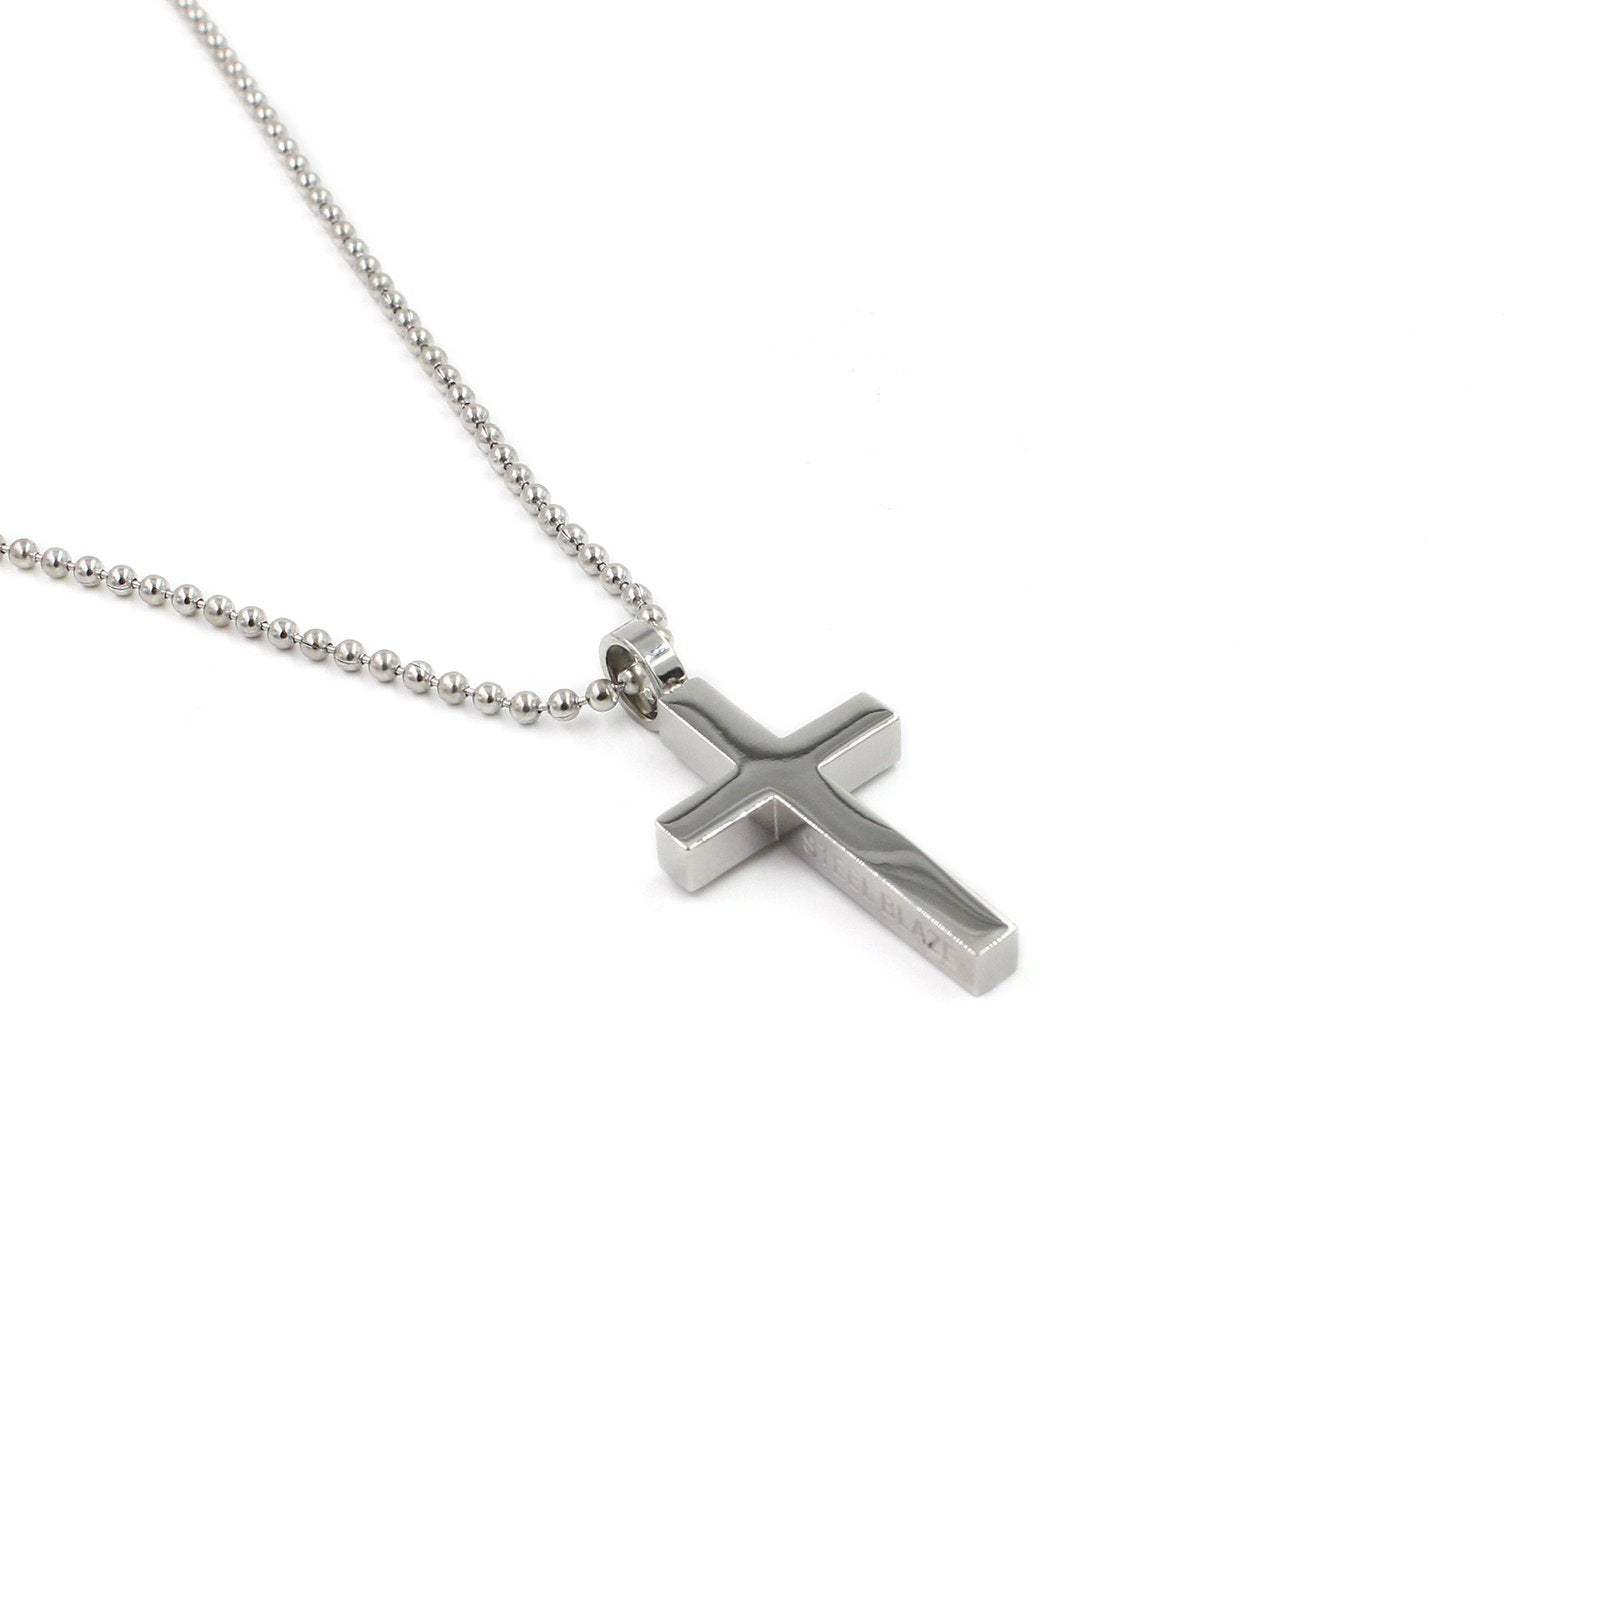 SBCross7 Large Cross Pendant Necklace